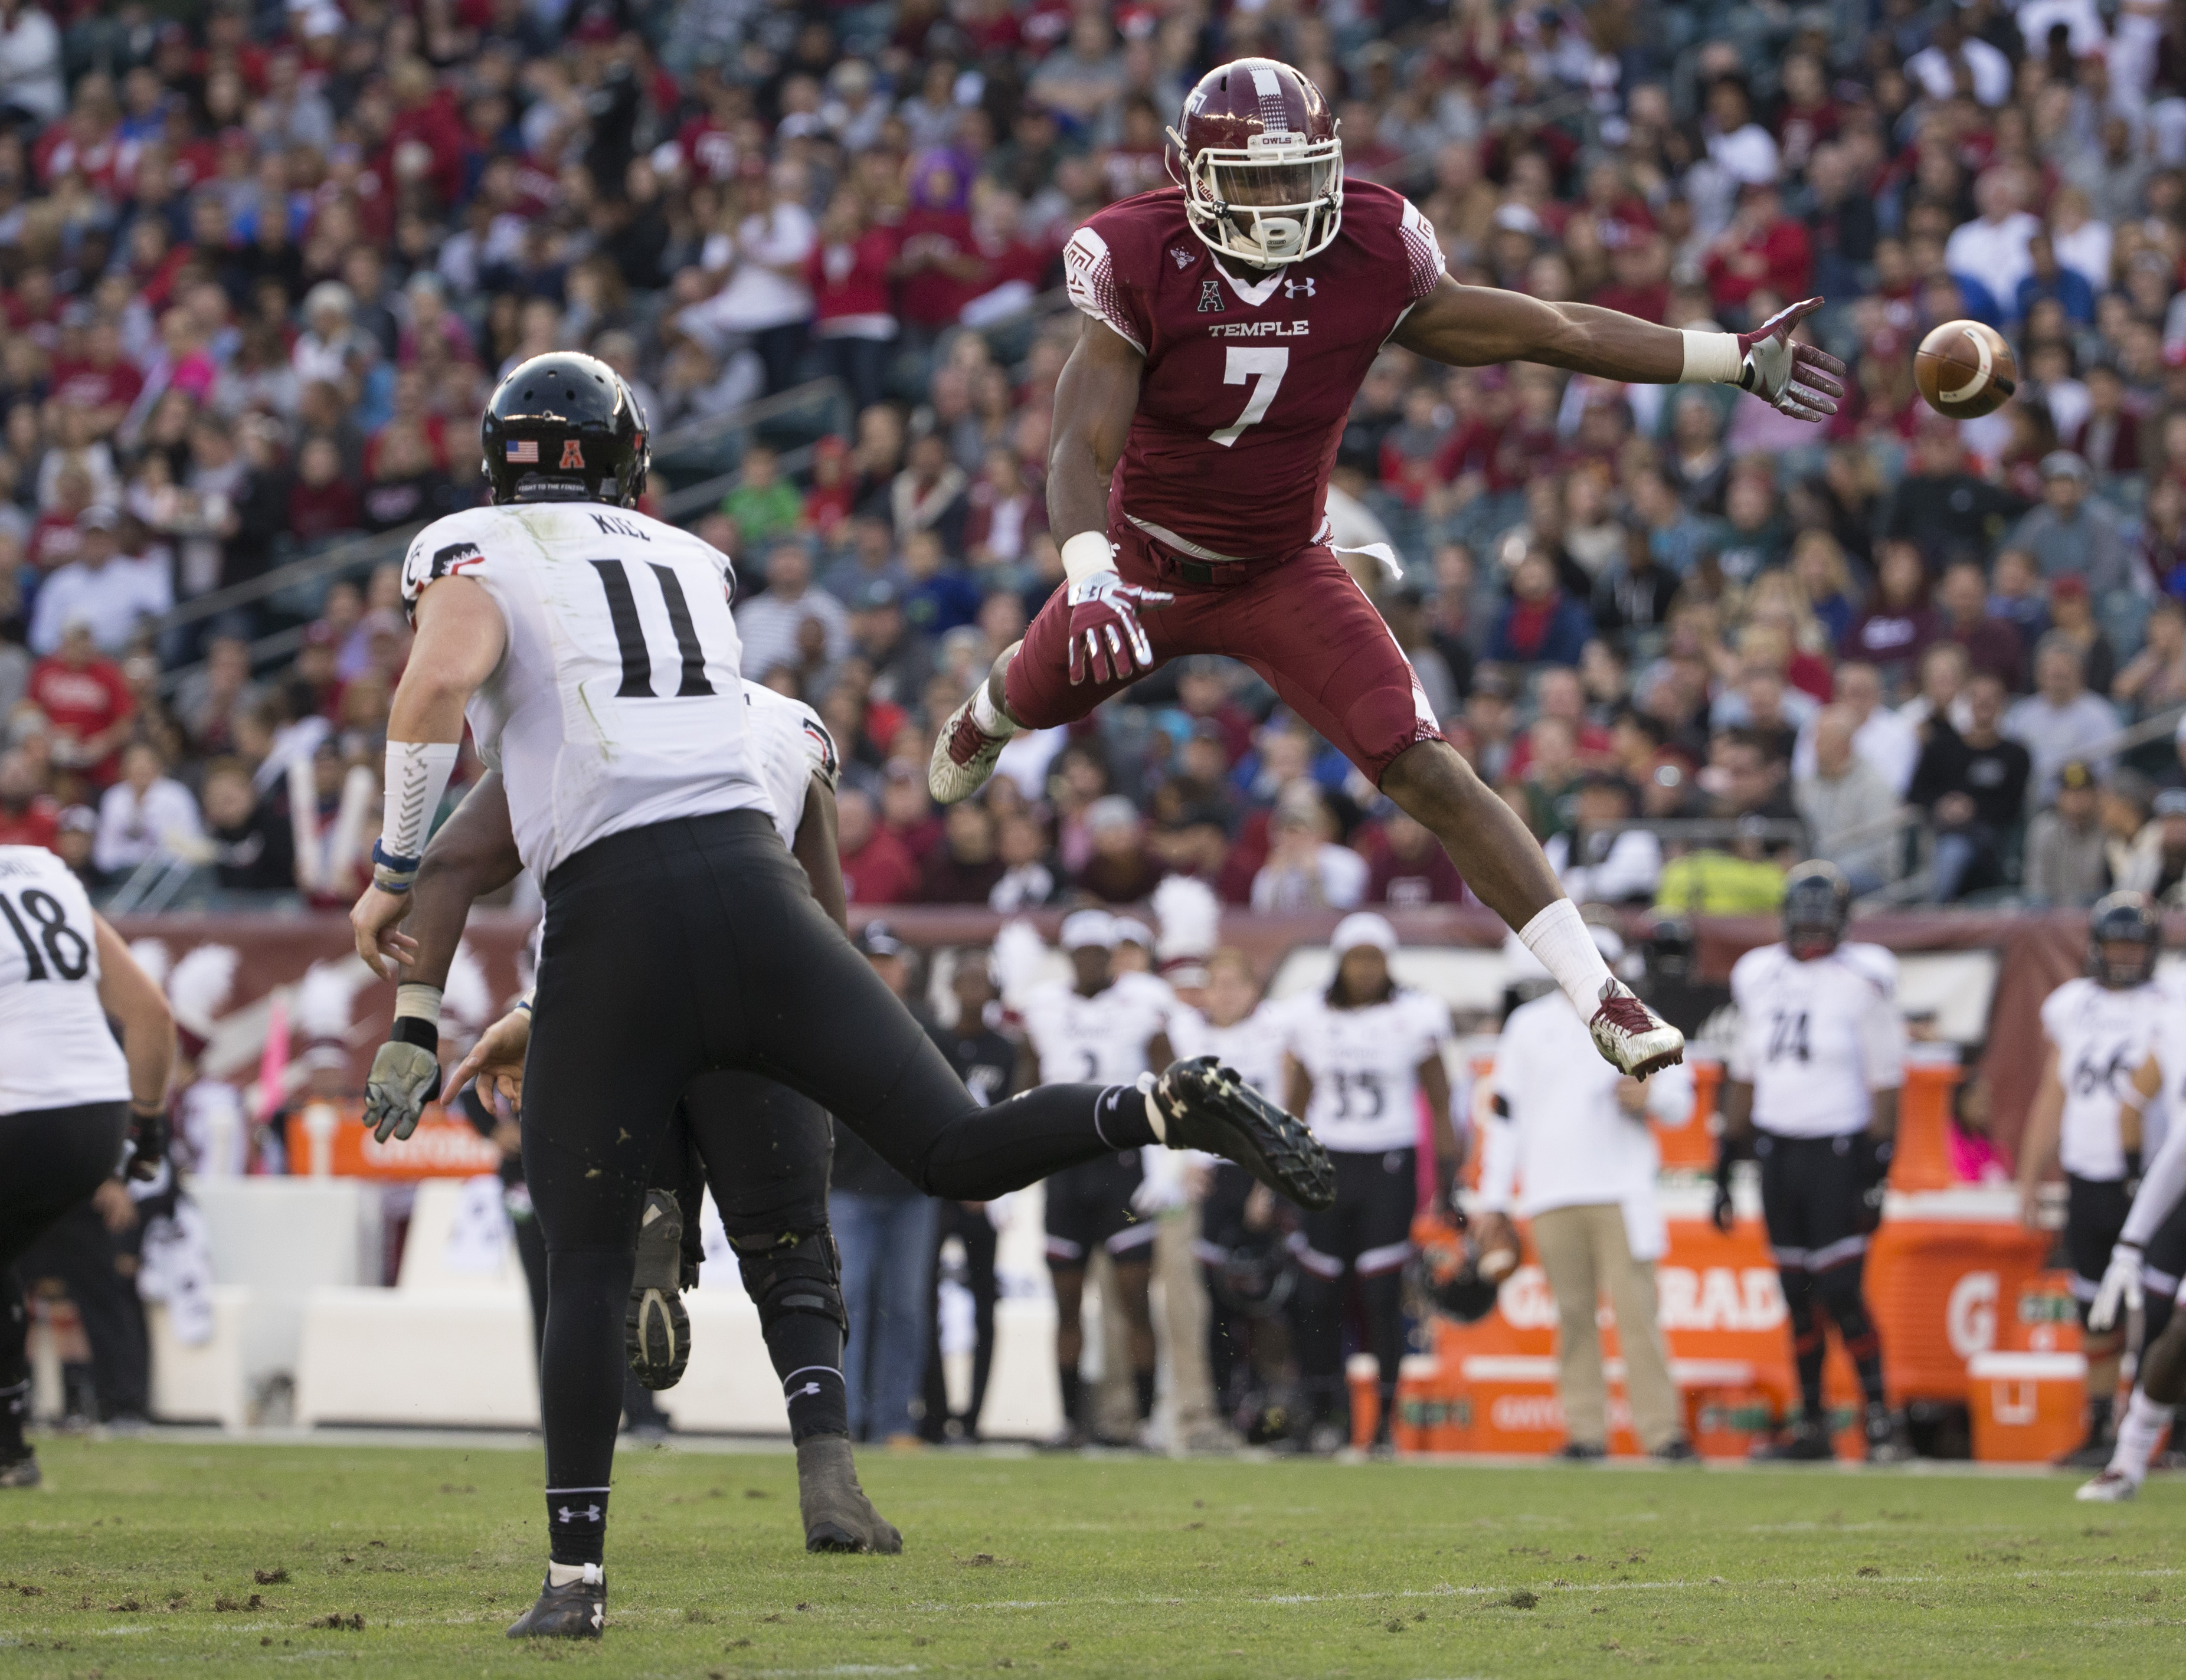 Temple linebacker Haason Reddick is gaining steam as a popular pick for the Buffalo Bills. (Getty Images)